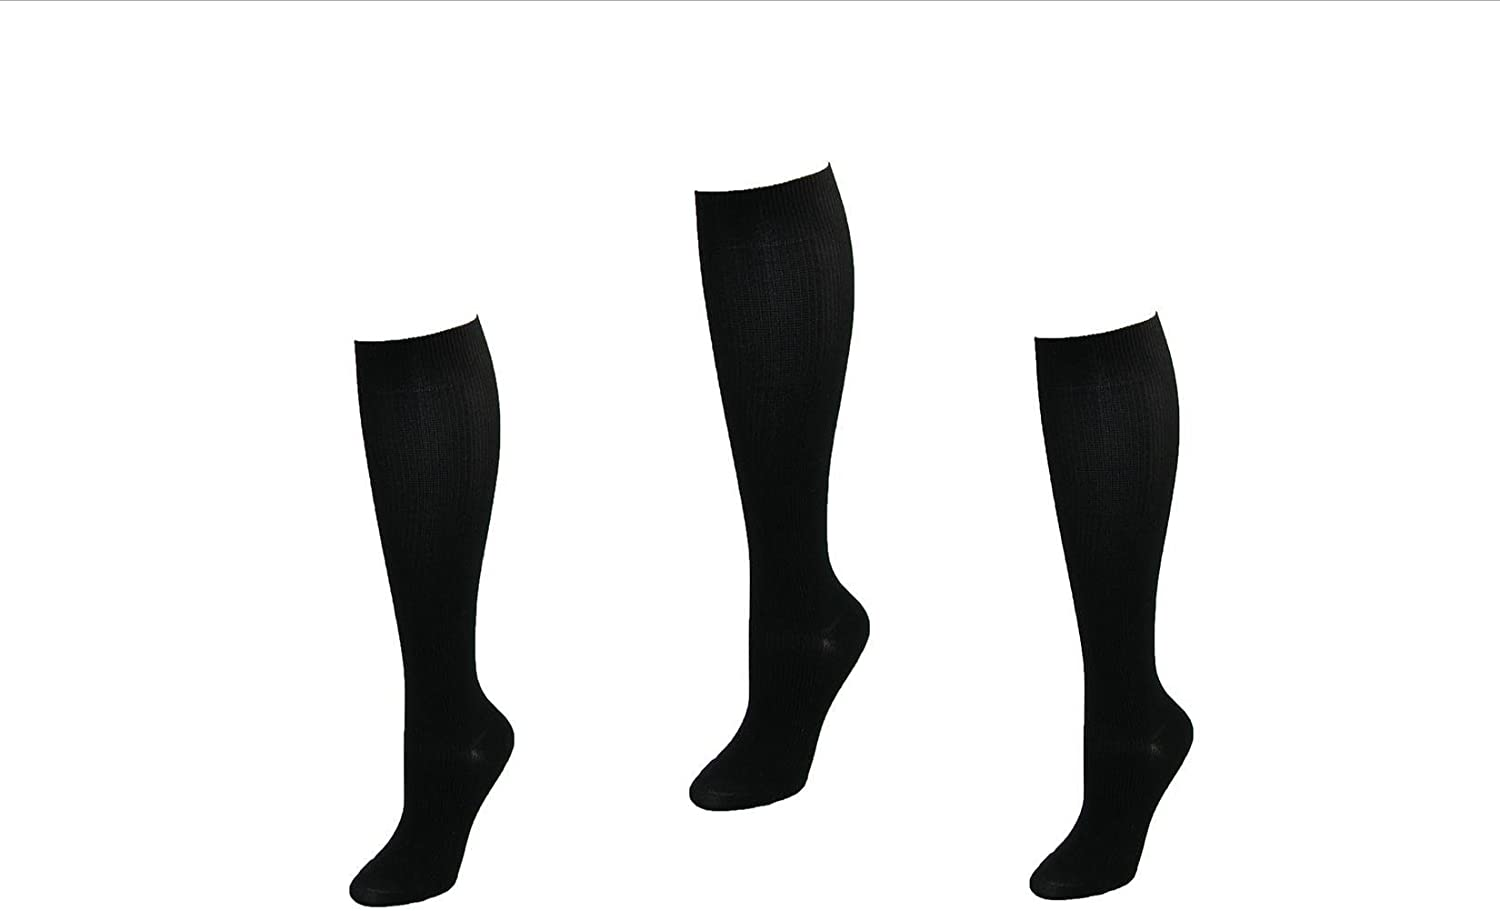 Think Medical Women's Gradient Compression Knee High Socks (3 Pair Pack)